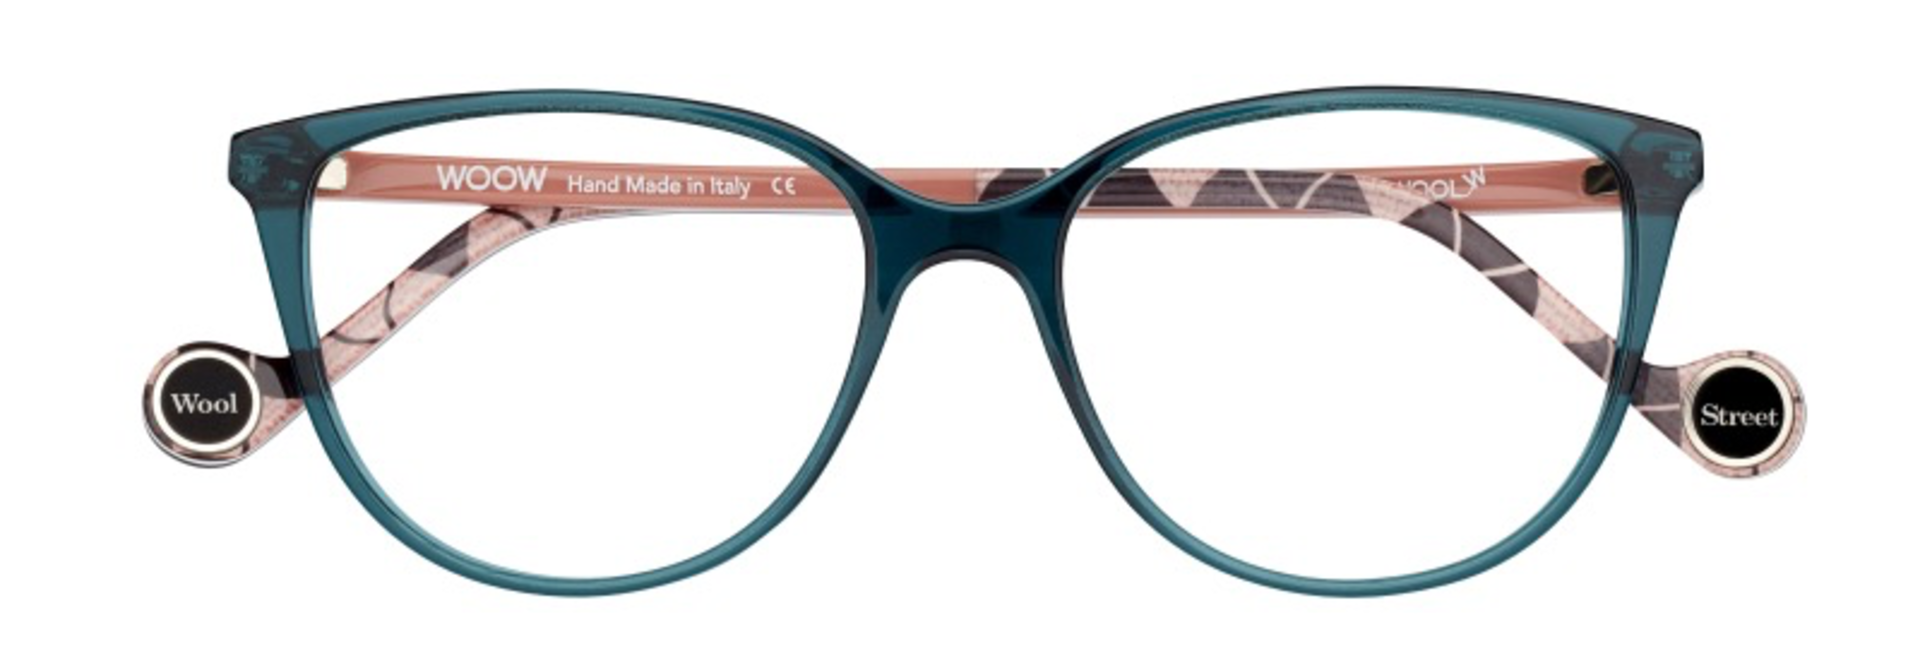 Wool Street 1 by Woow Eyewear